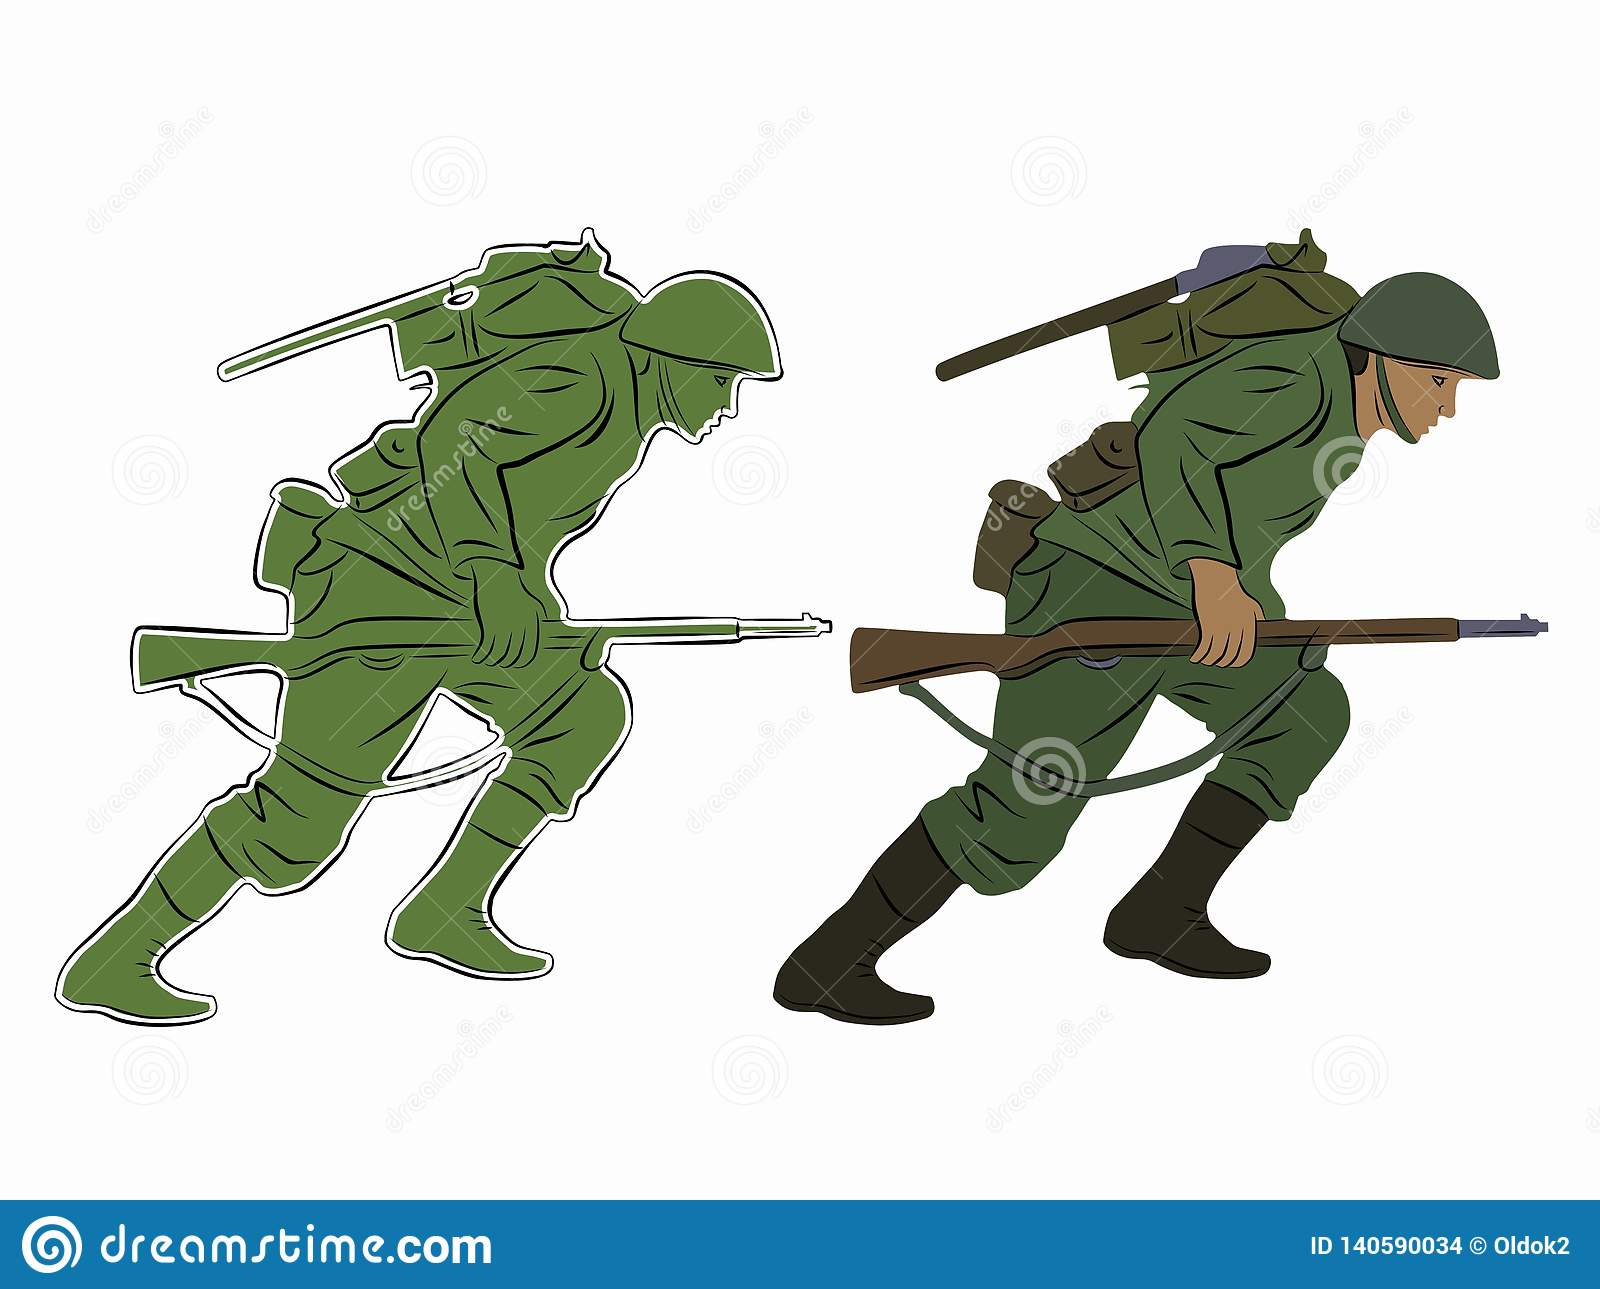 Illustration Of A Running Soldier, Vector Draw Stock Vector